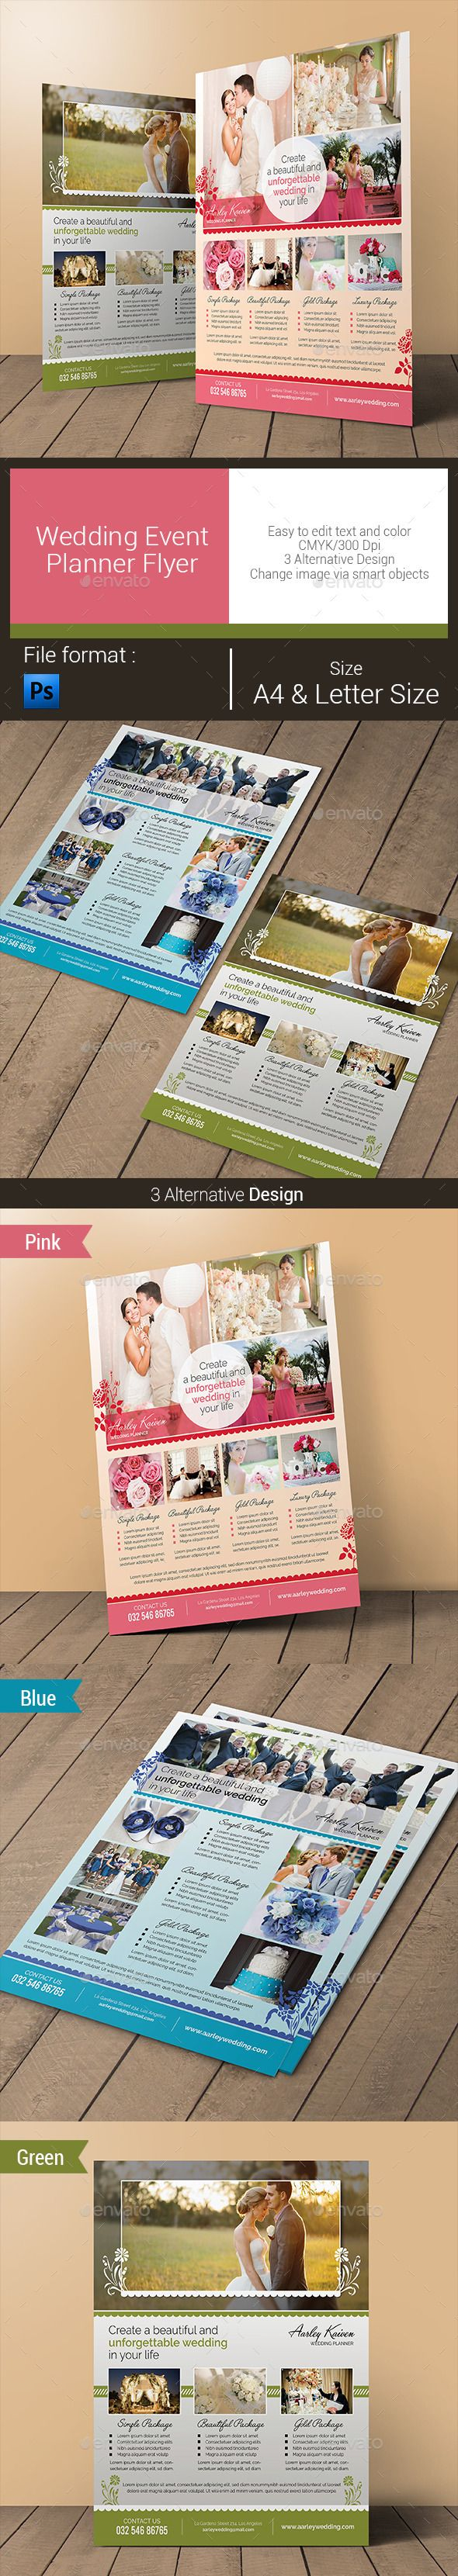 17 best flyer templates images by wanderingwestie.myshopify.com on ...